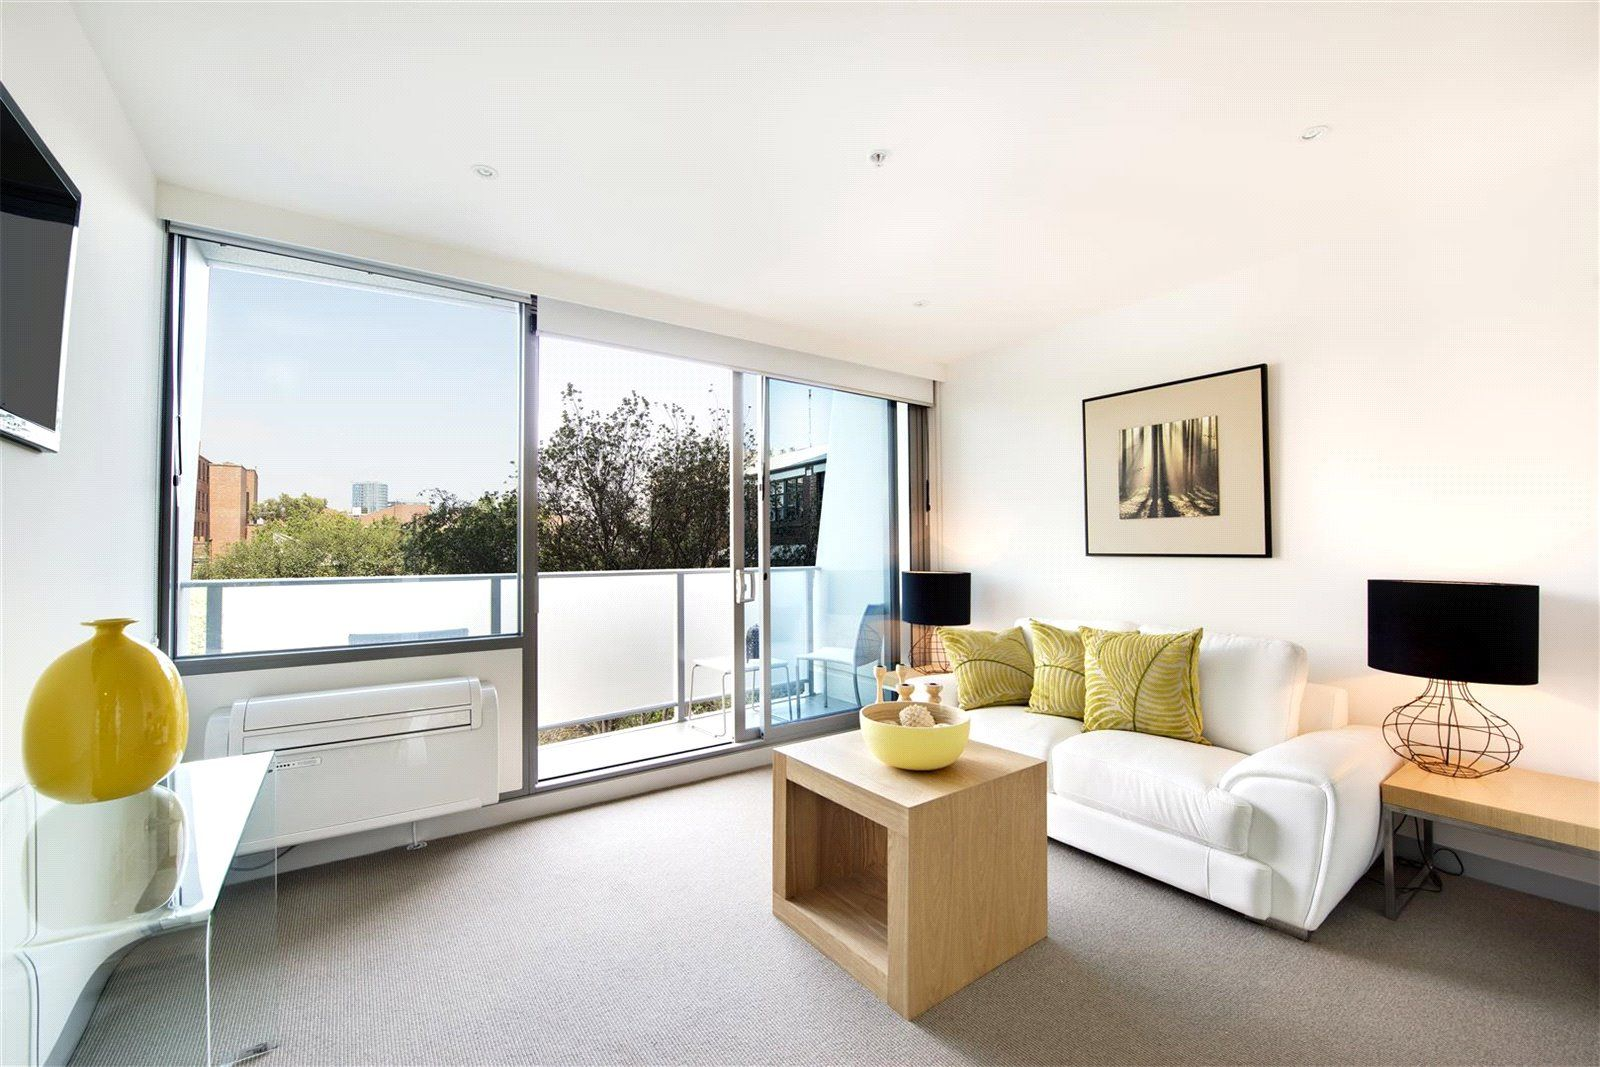 Flagstaff Place: One Bedroom Apartment with Everything at Doorstep!